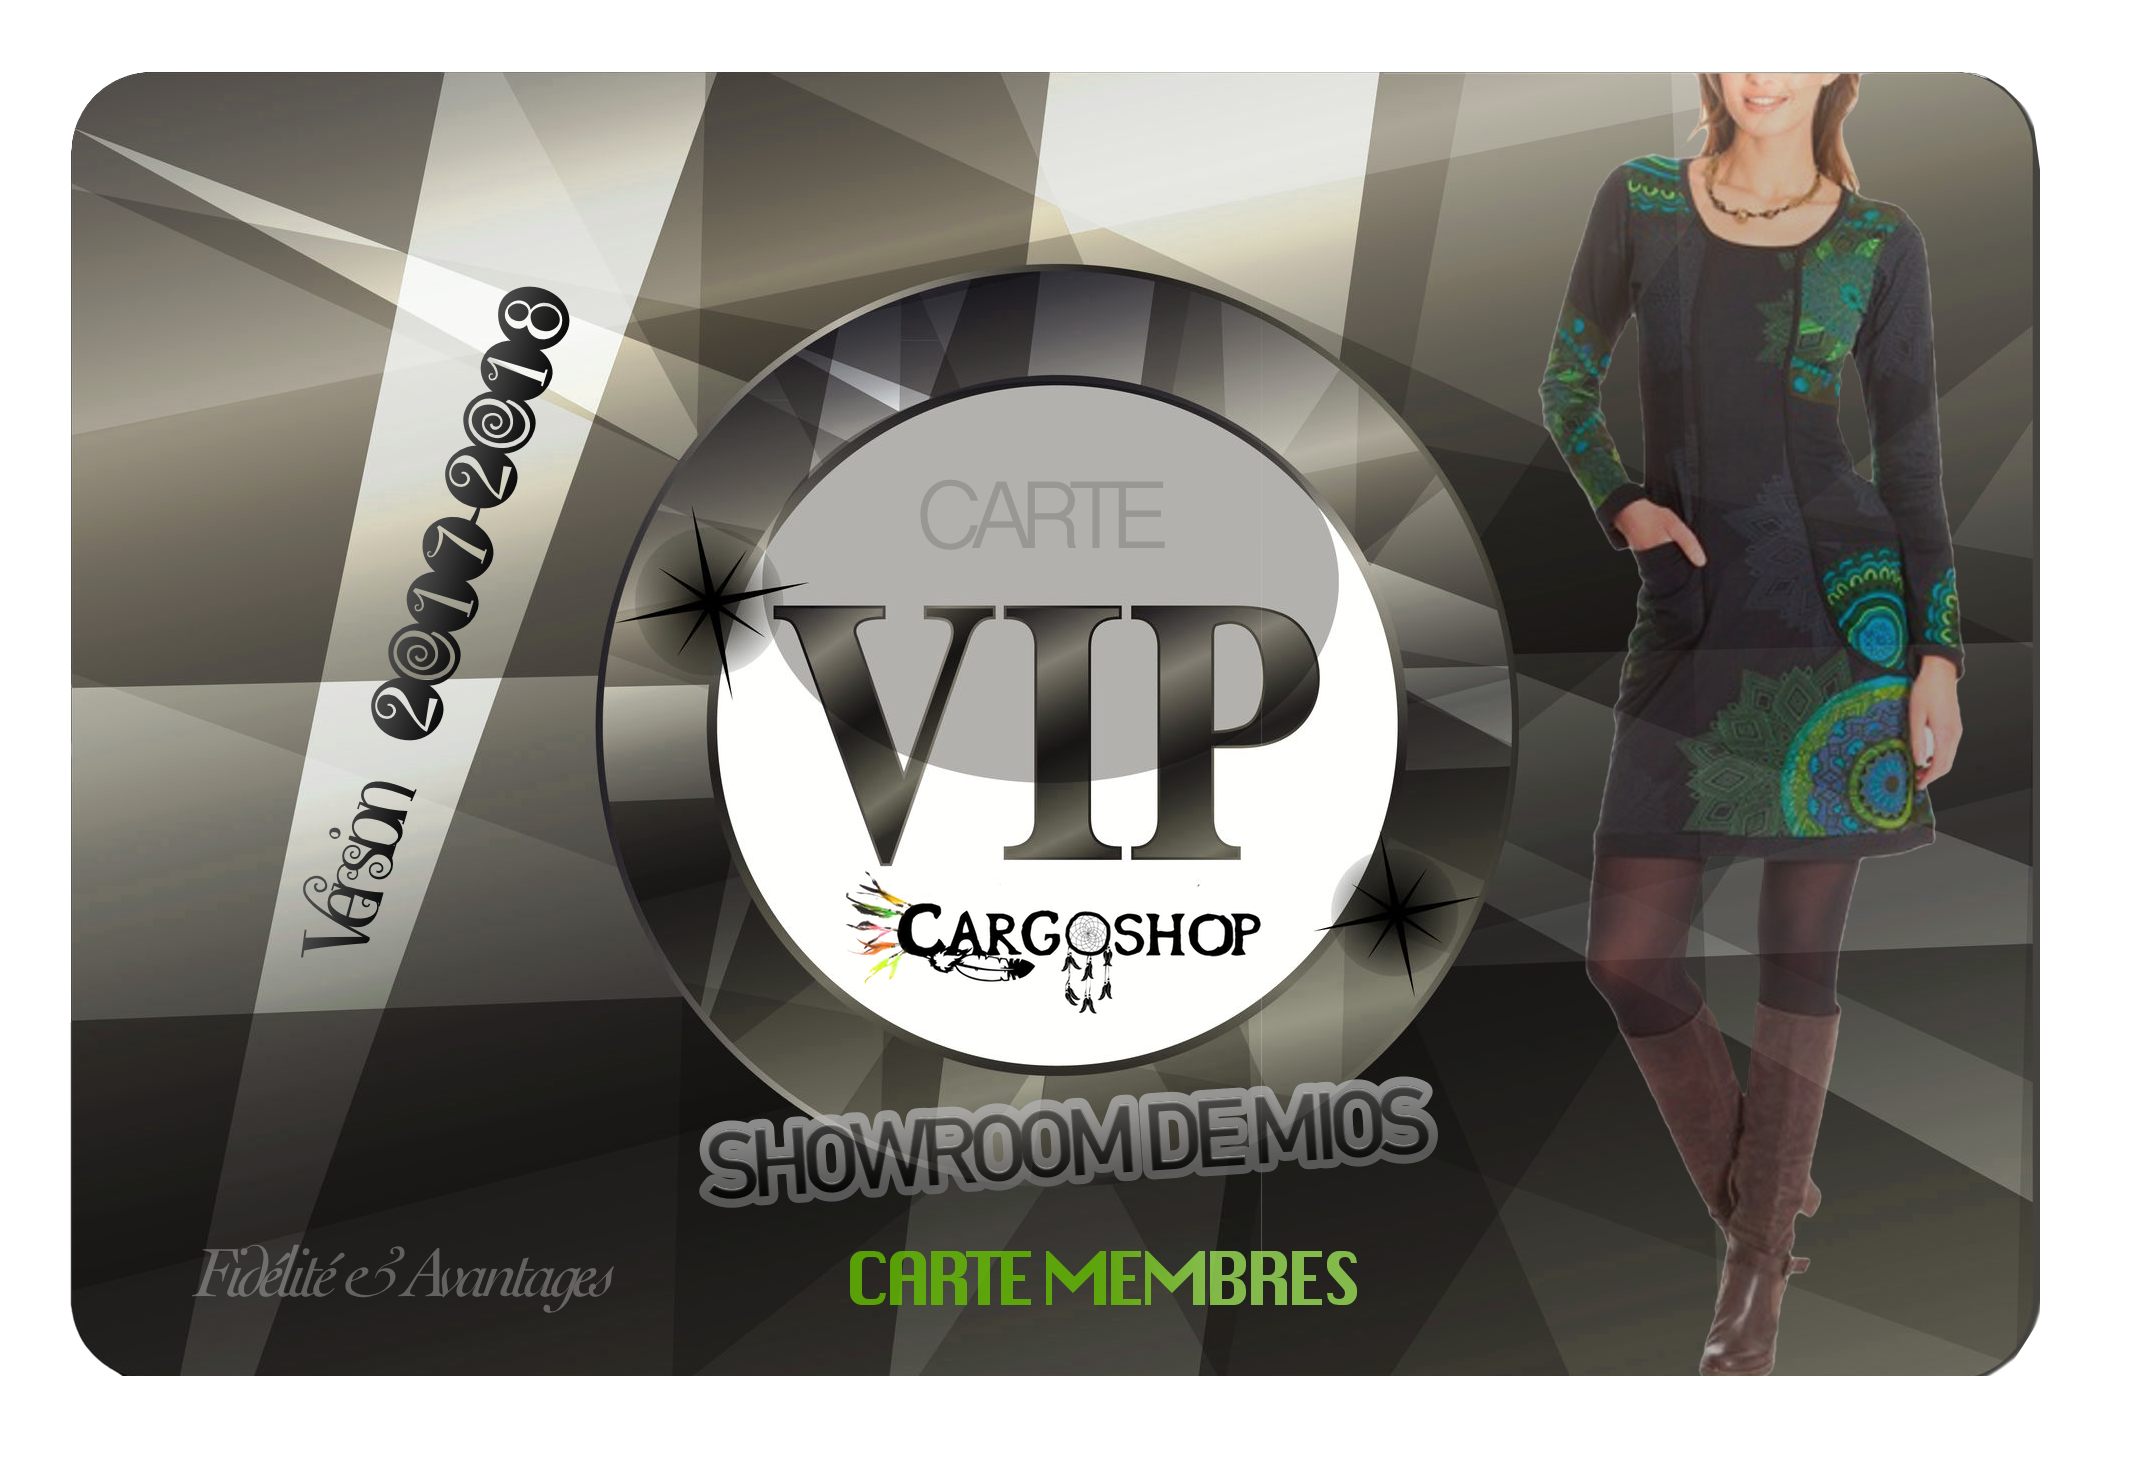 carte_vip_showroom_